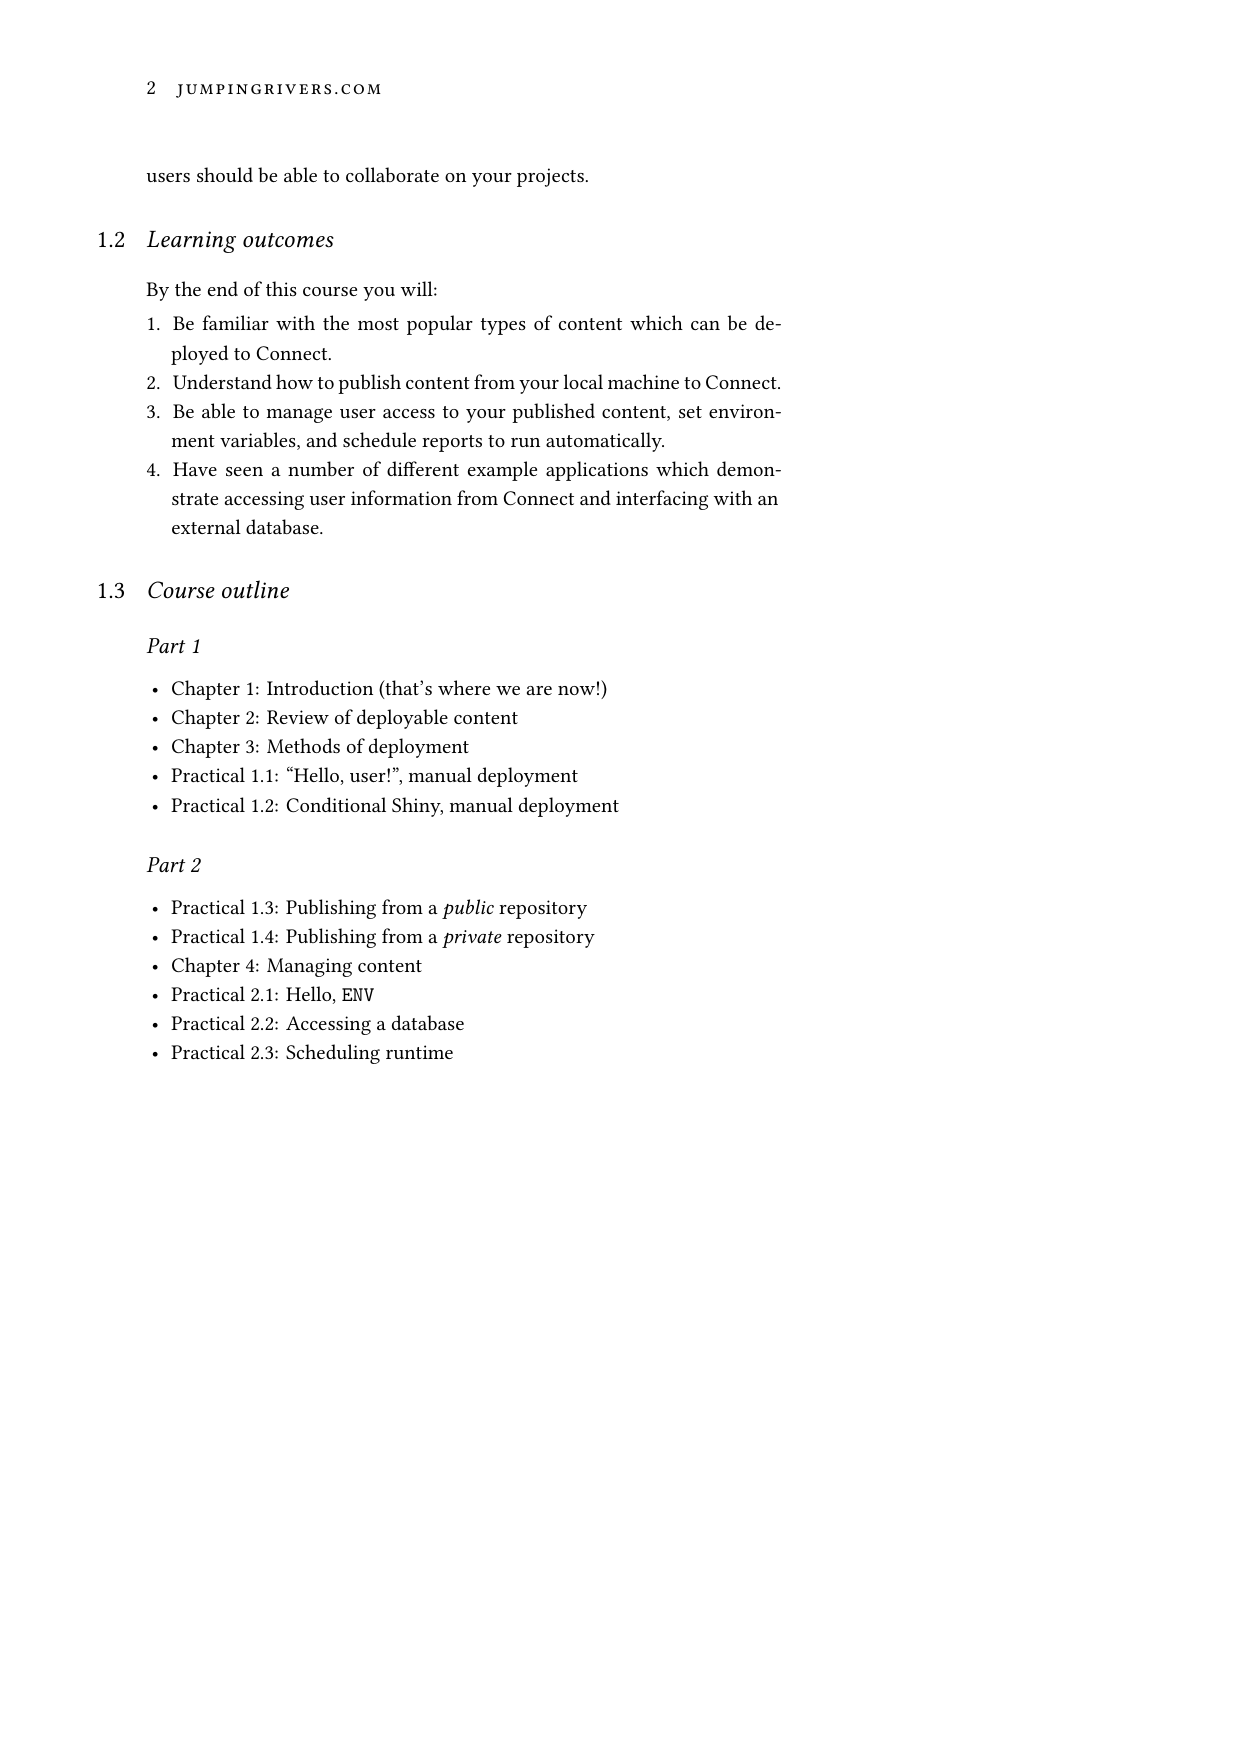 Example course material for 'Introduction to RStudio Connect